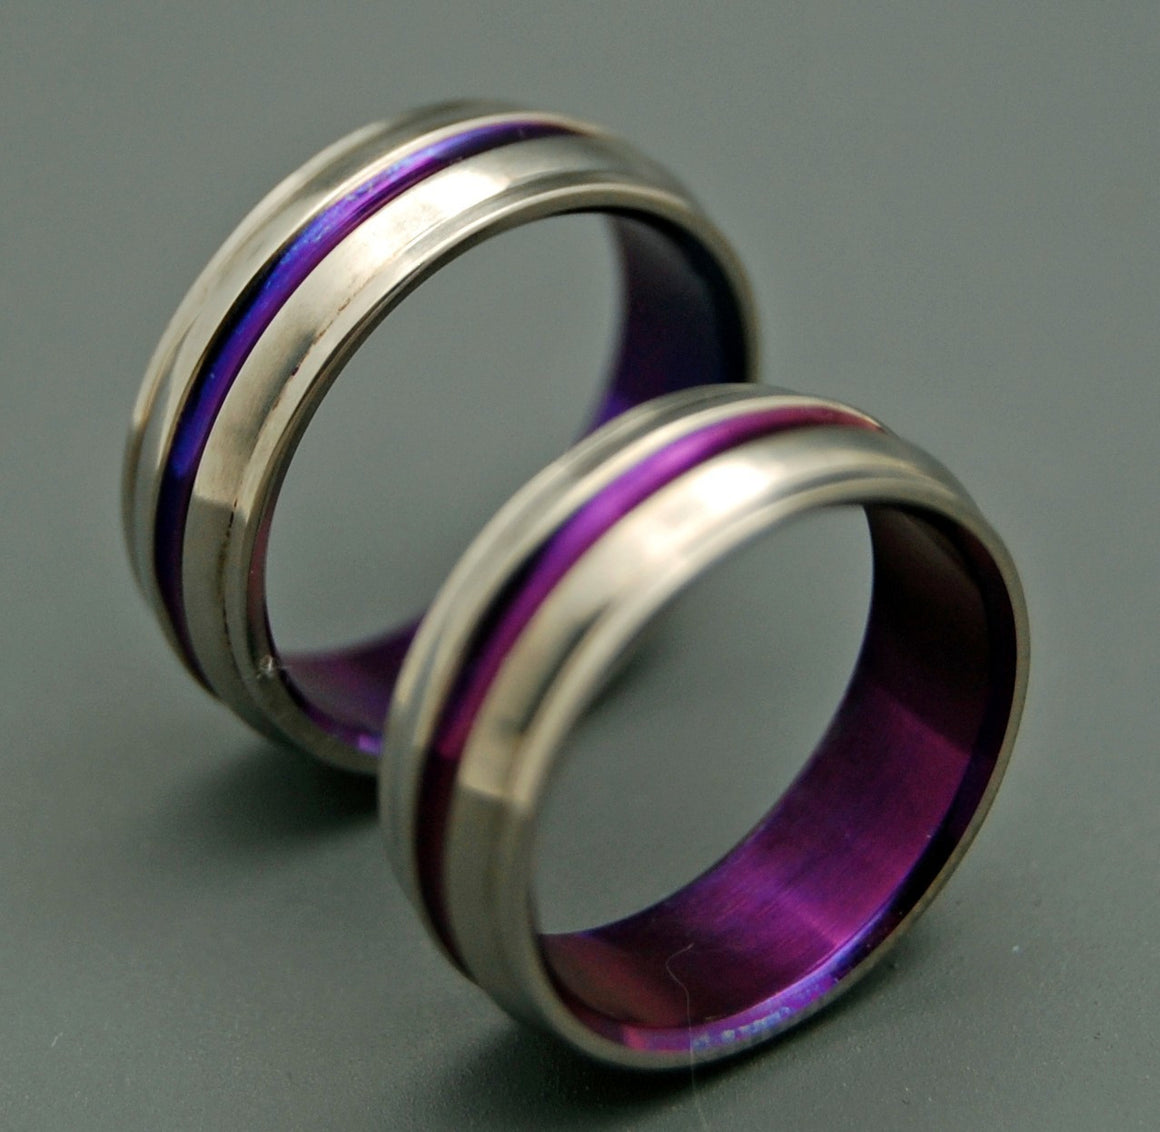 PASSION FOR PURPLE | Purple Handcrafted Titanium Custom Rings Wedding Ring Set - Minter and Richter Designs